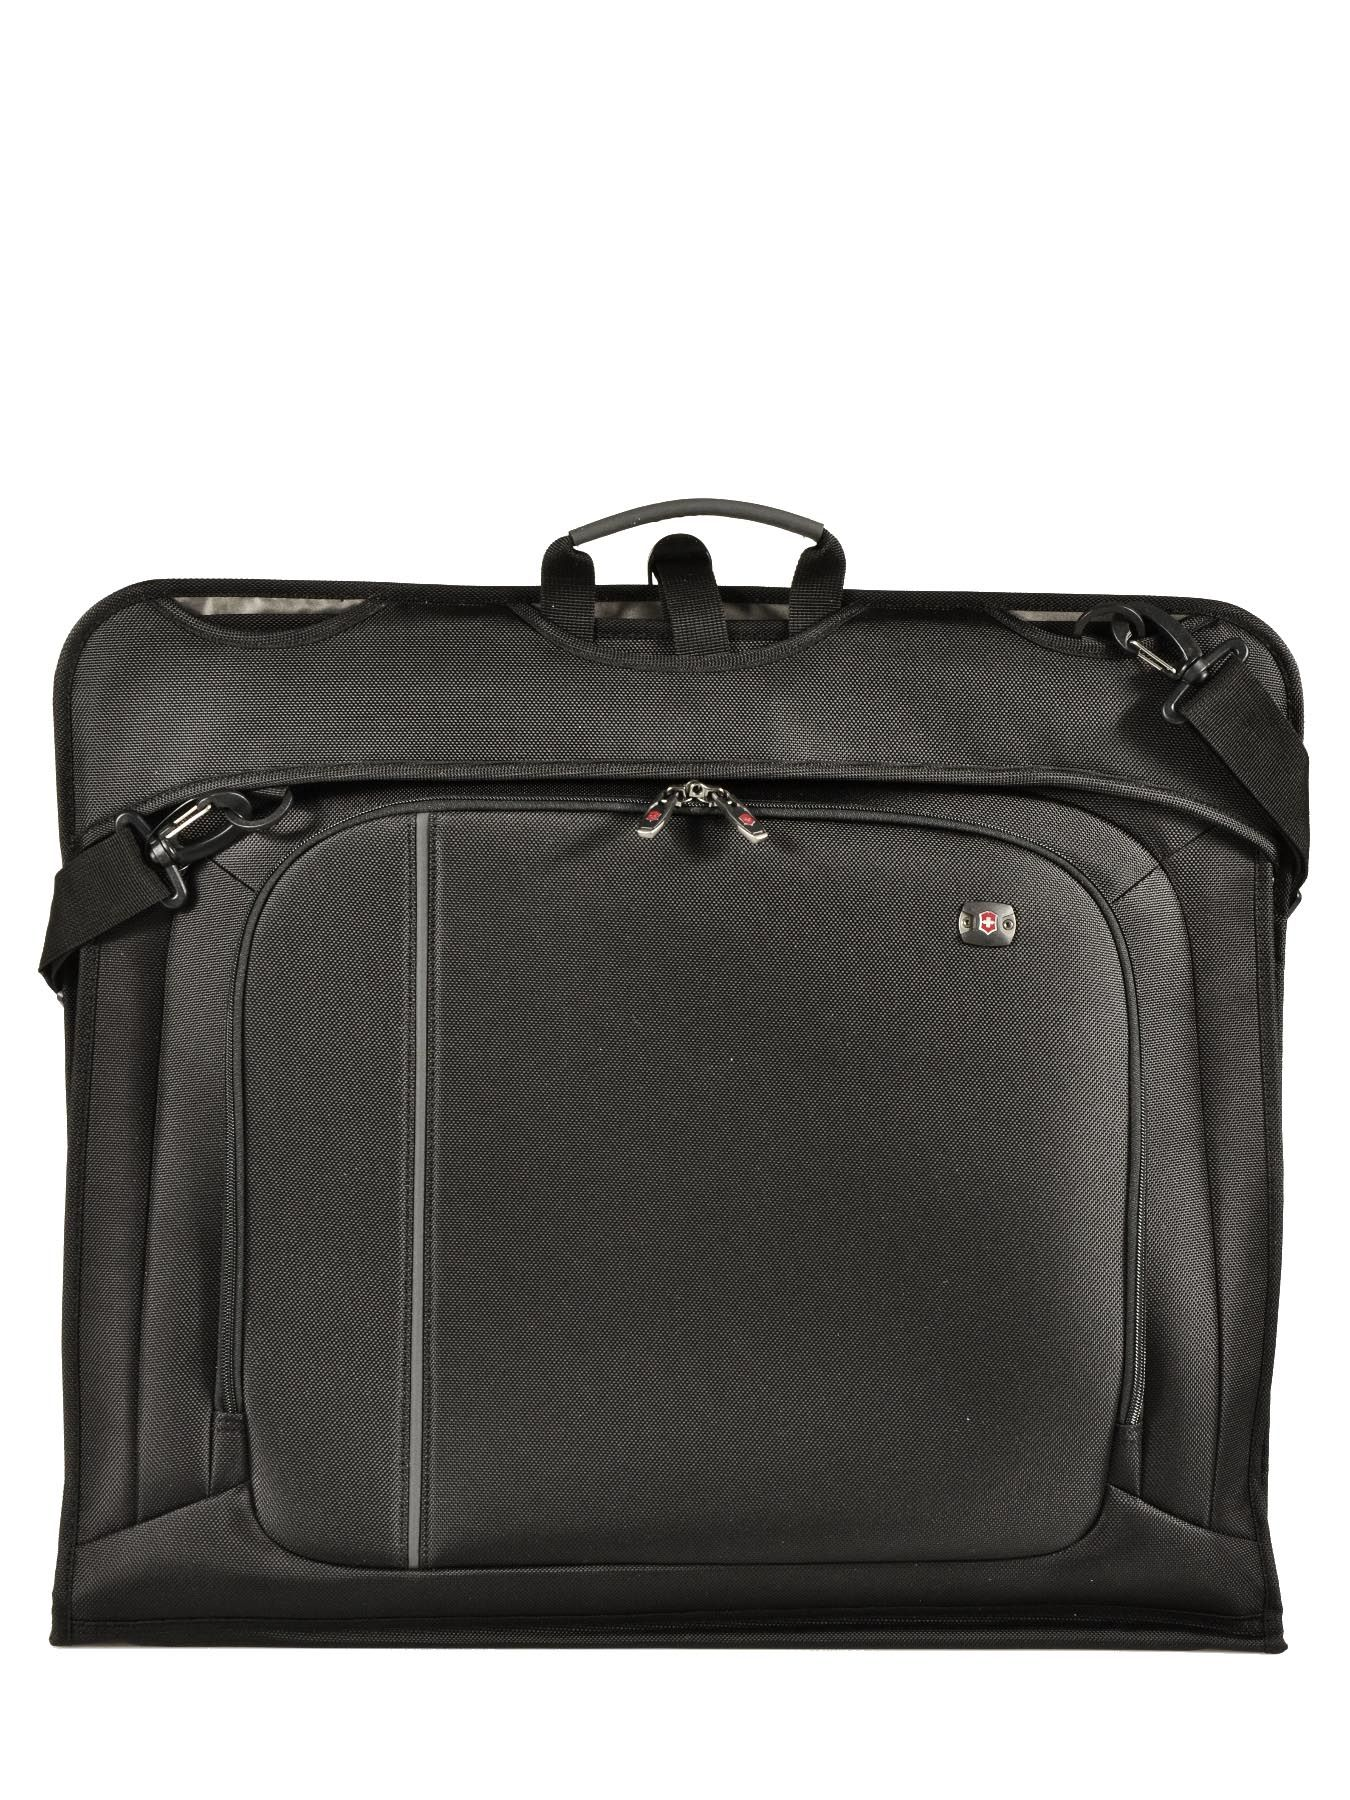 Porte habits victorinox black werks traveler 313013 for Porte habits